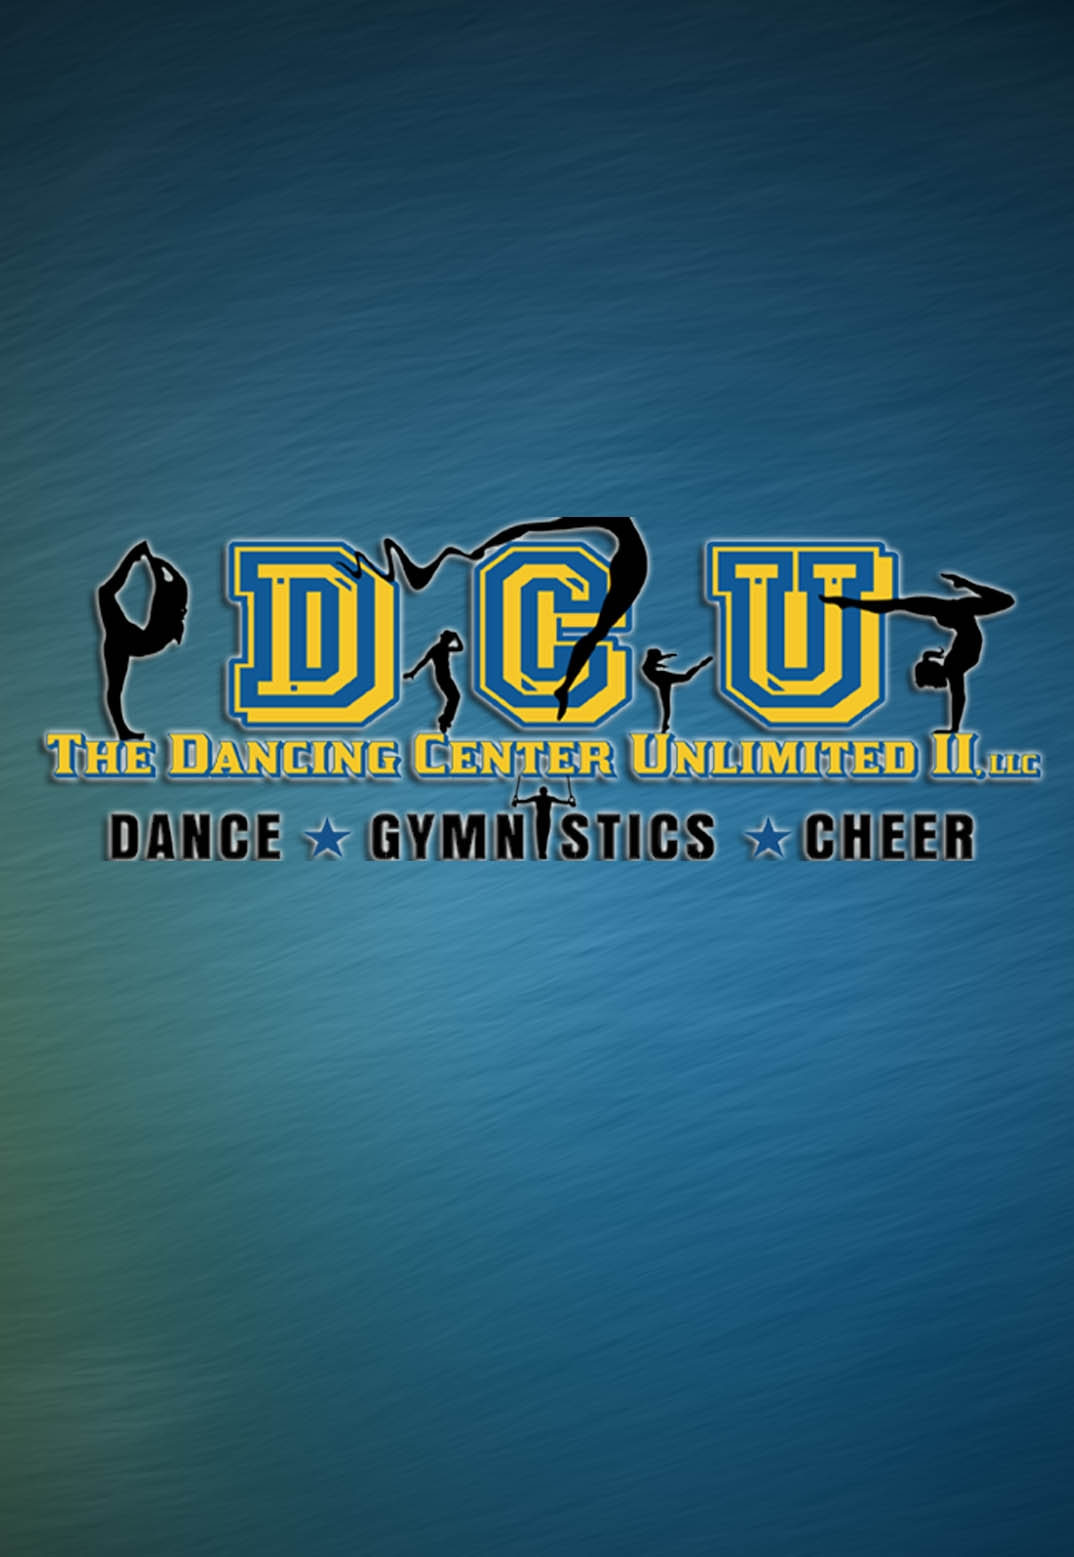 THE DANCIN' CENTER UNLIMITED 17TH ANNUAL DANCE CONCERT SATURDAY, MAY 28, 2016